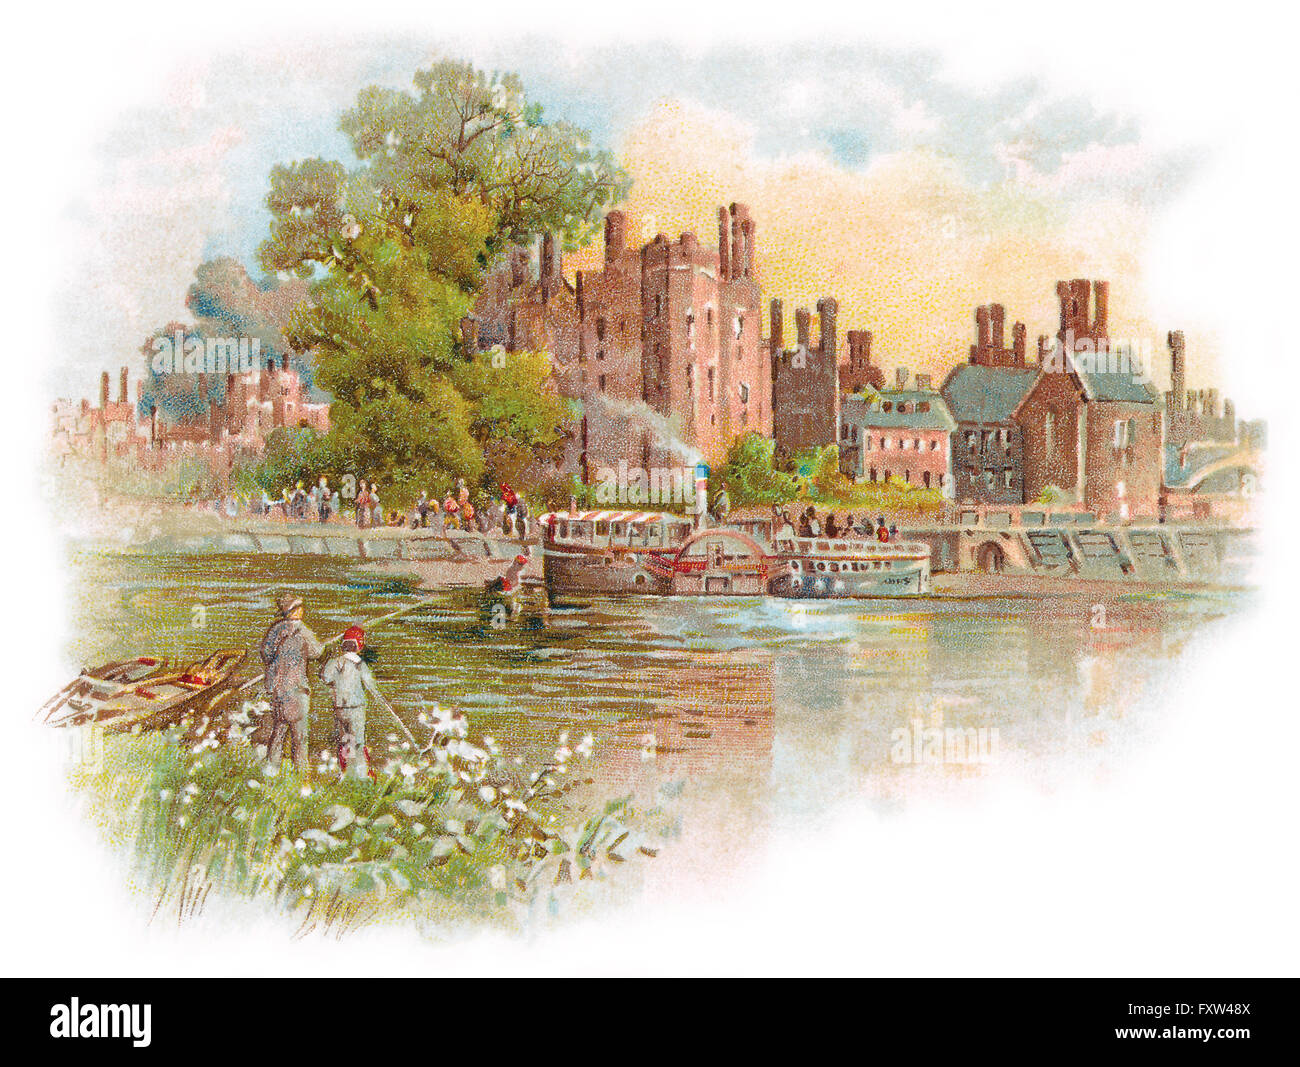 Edwardian illustration of Hampton Court Palace and the River Thames. - Stock Image